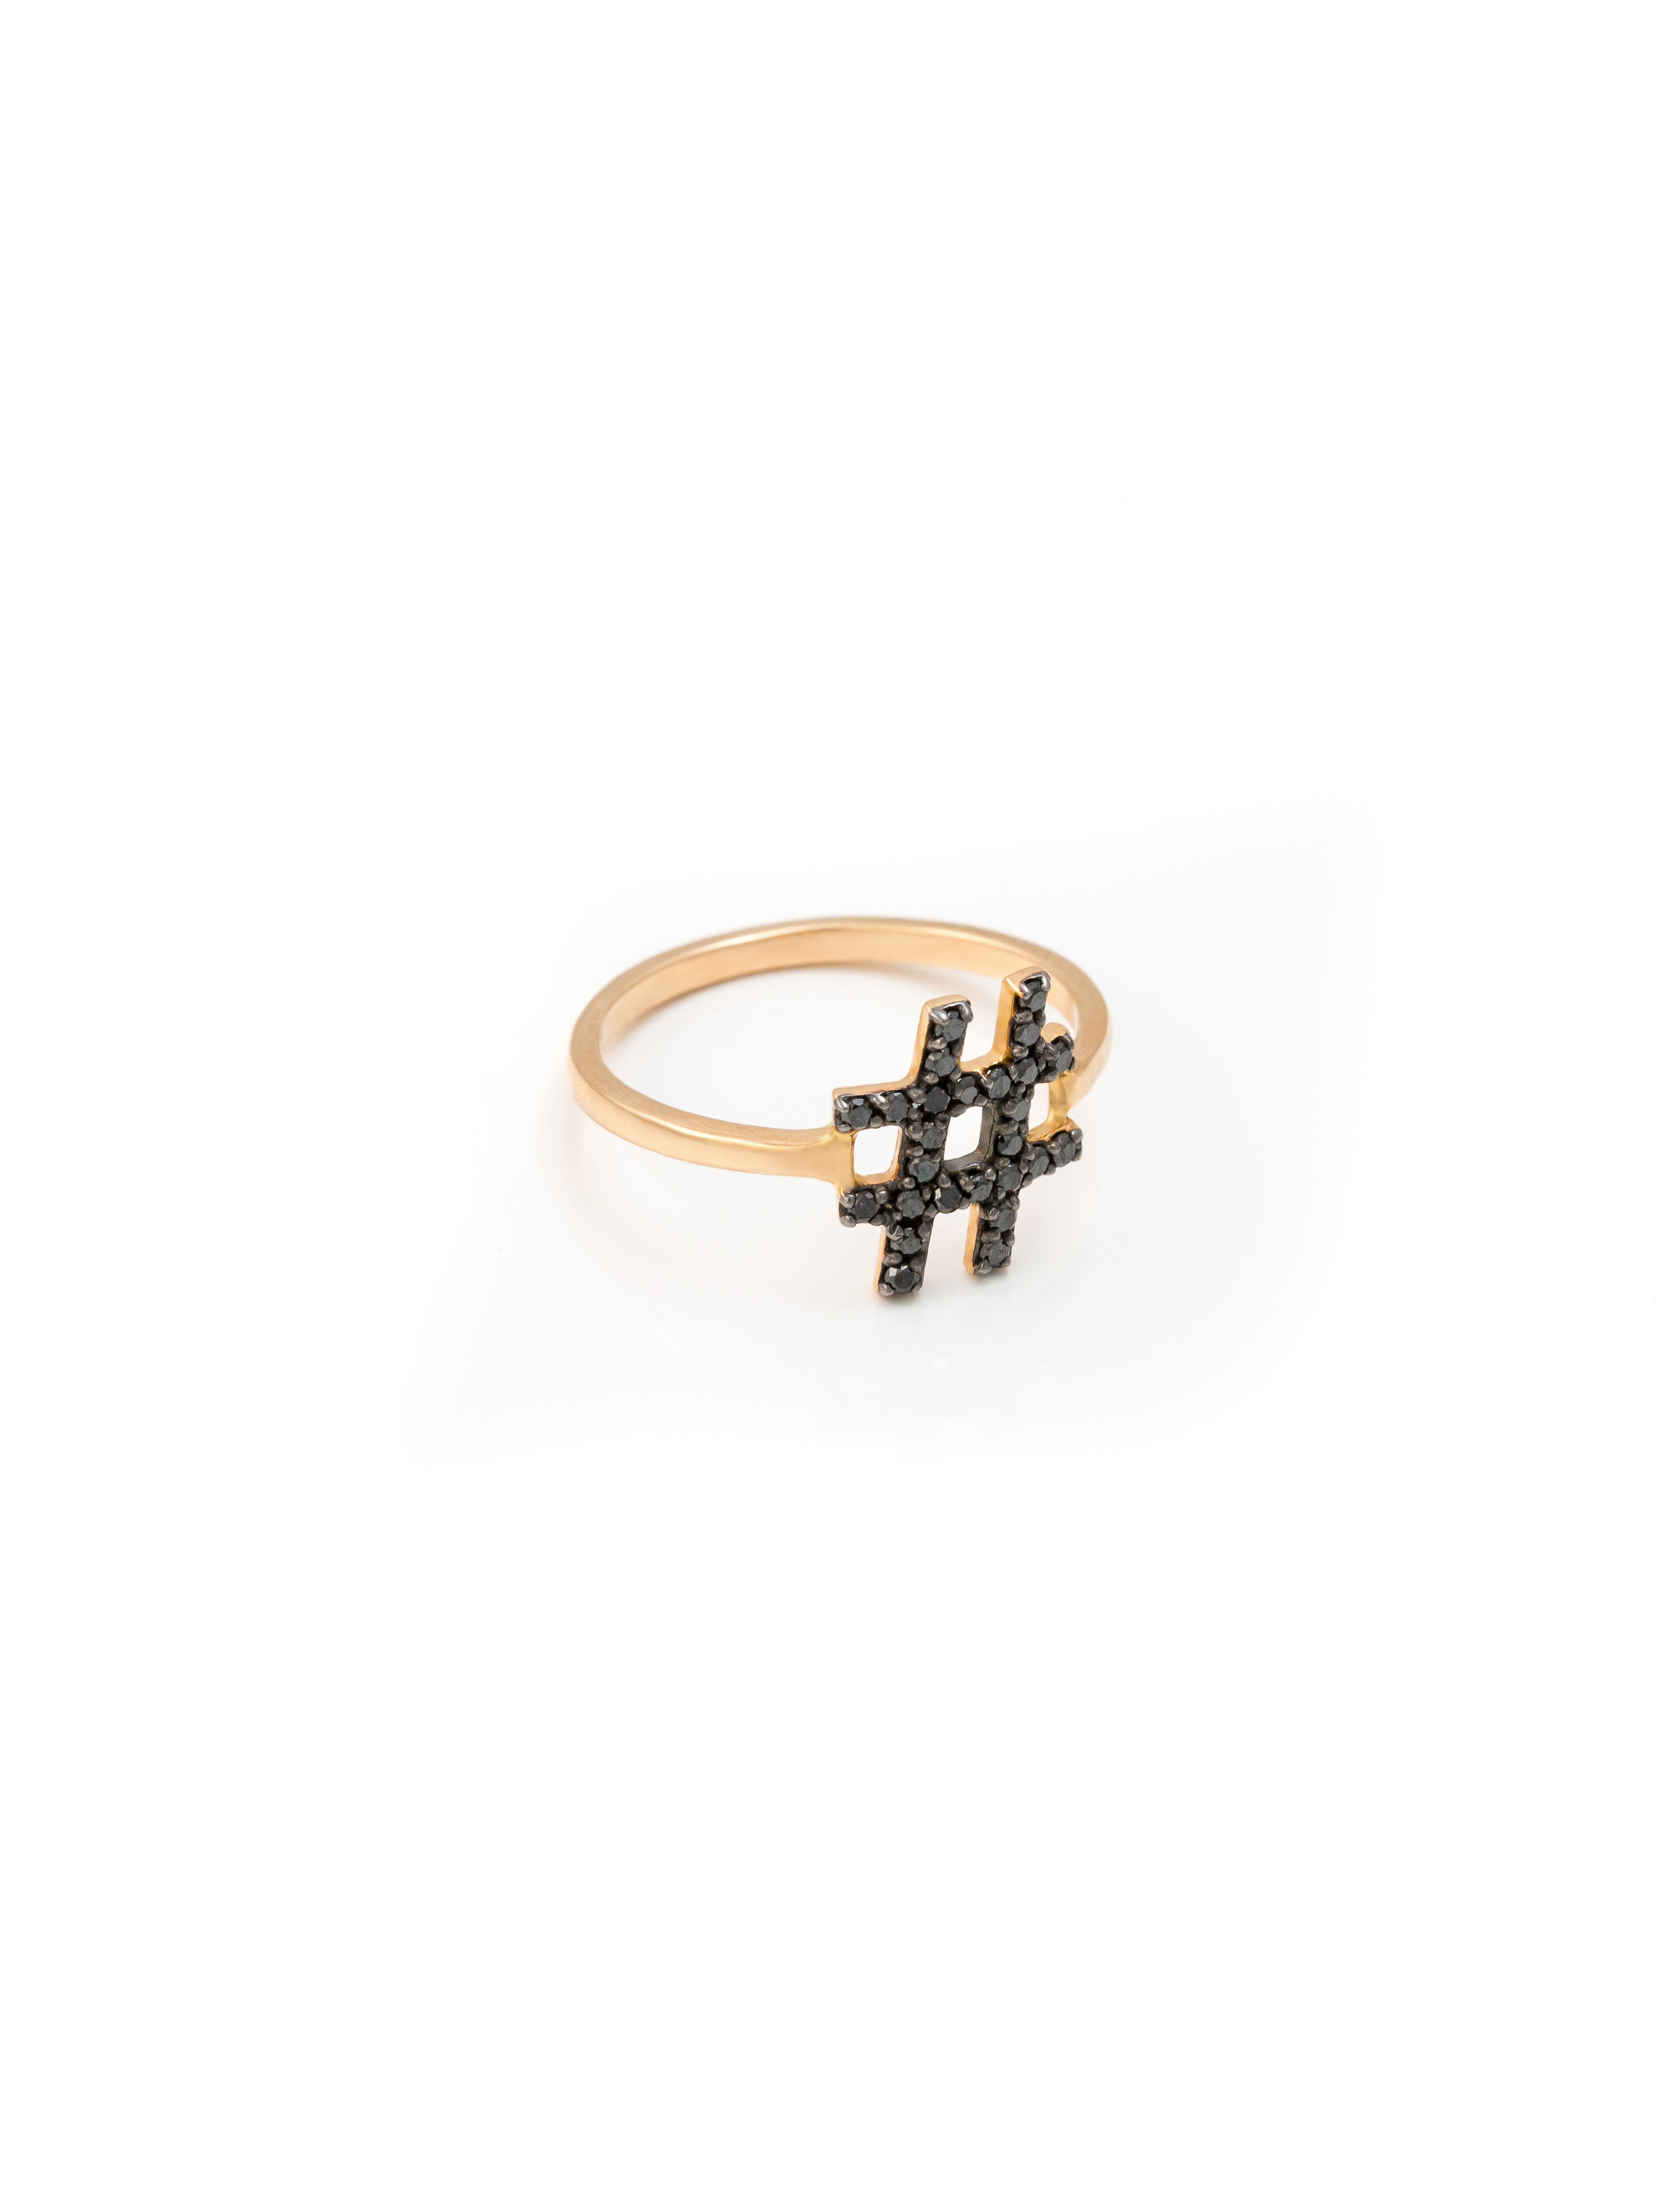 jewellery is stores product hashtag online an twist fine store jewelry the ring symbol